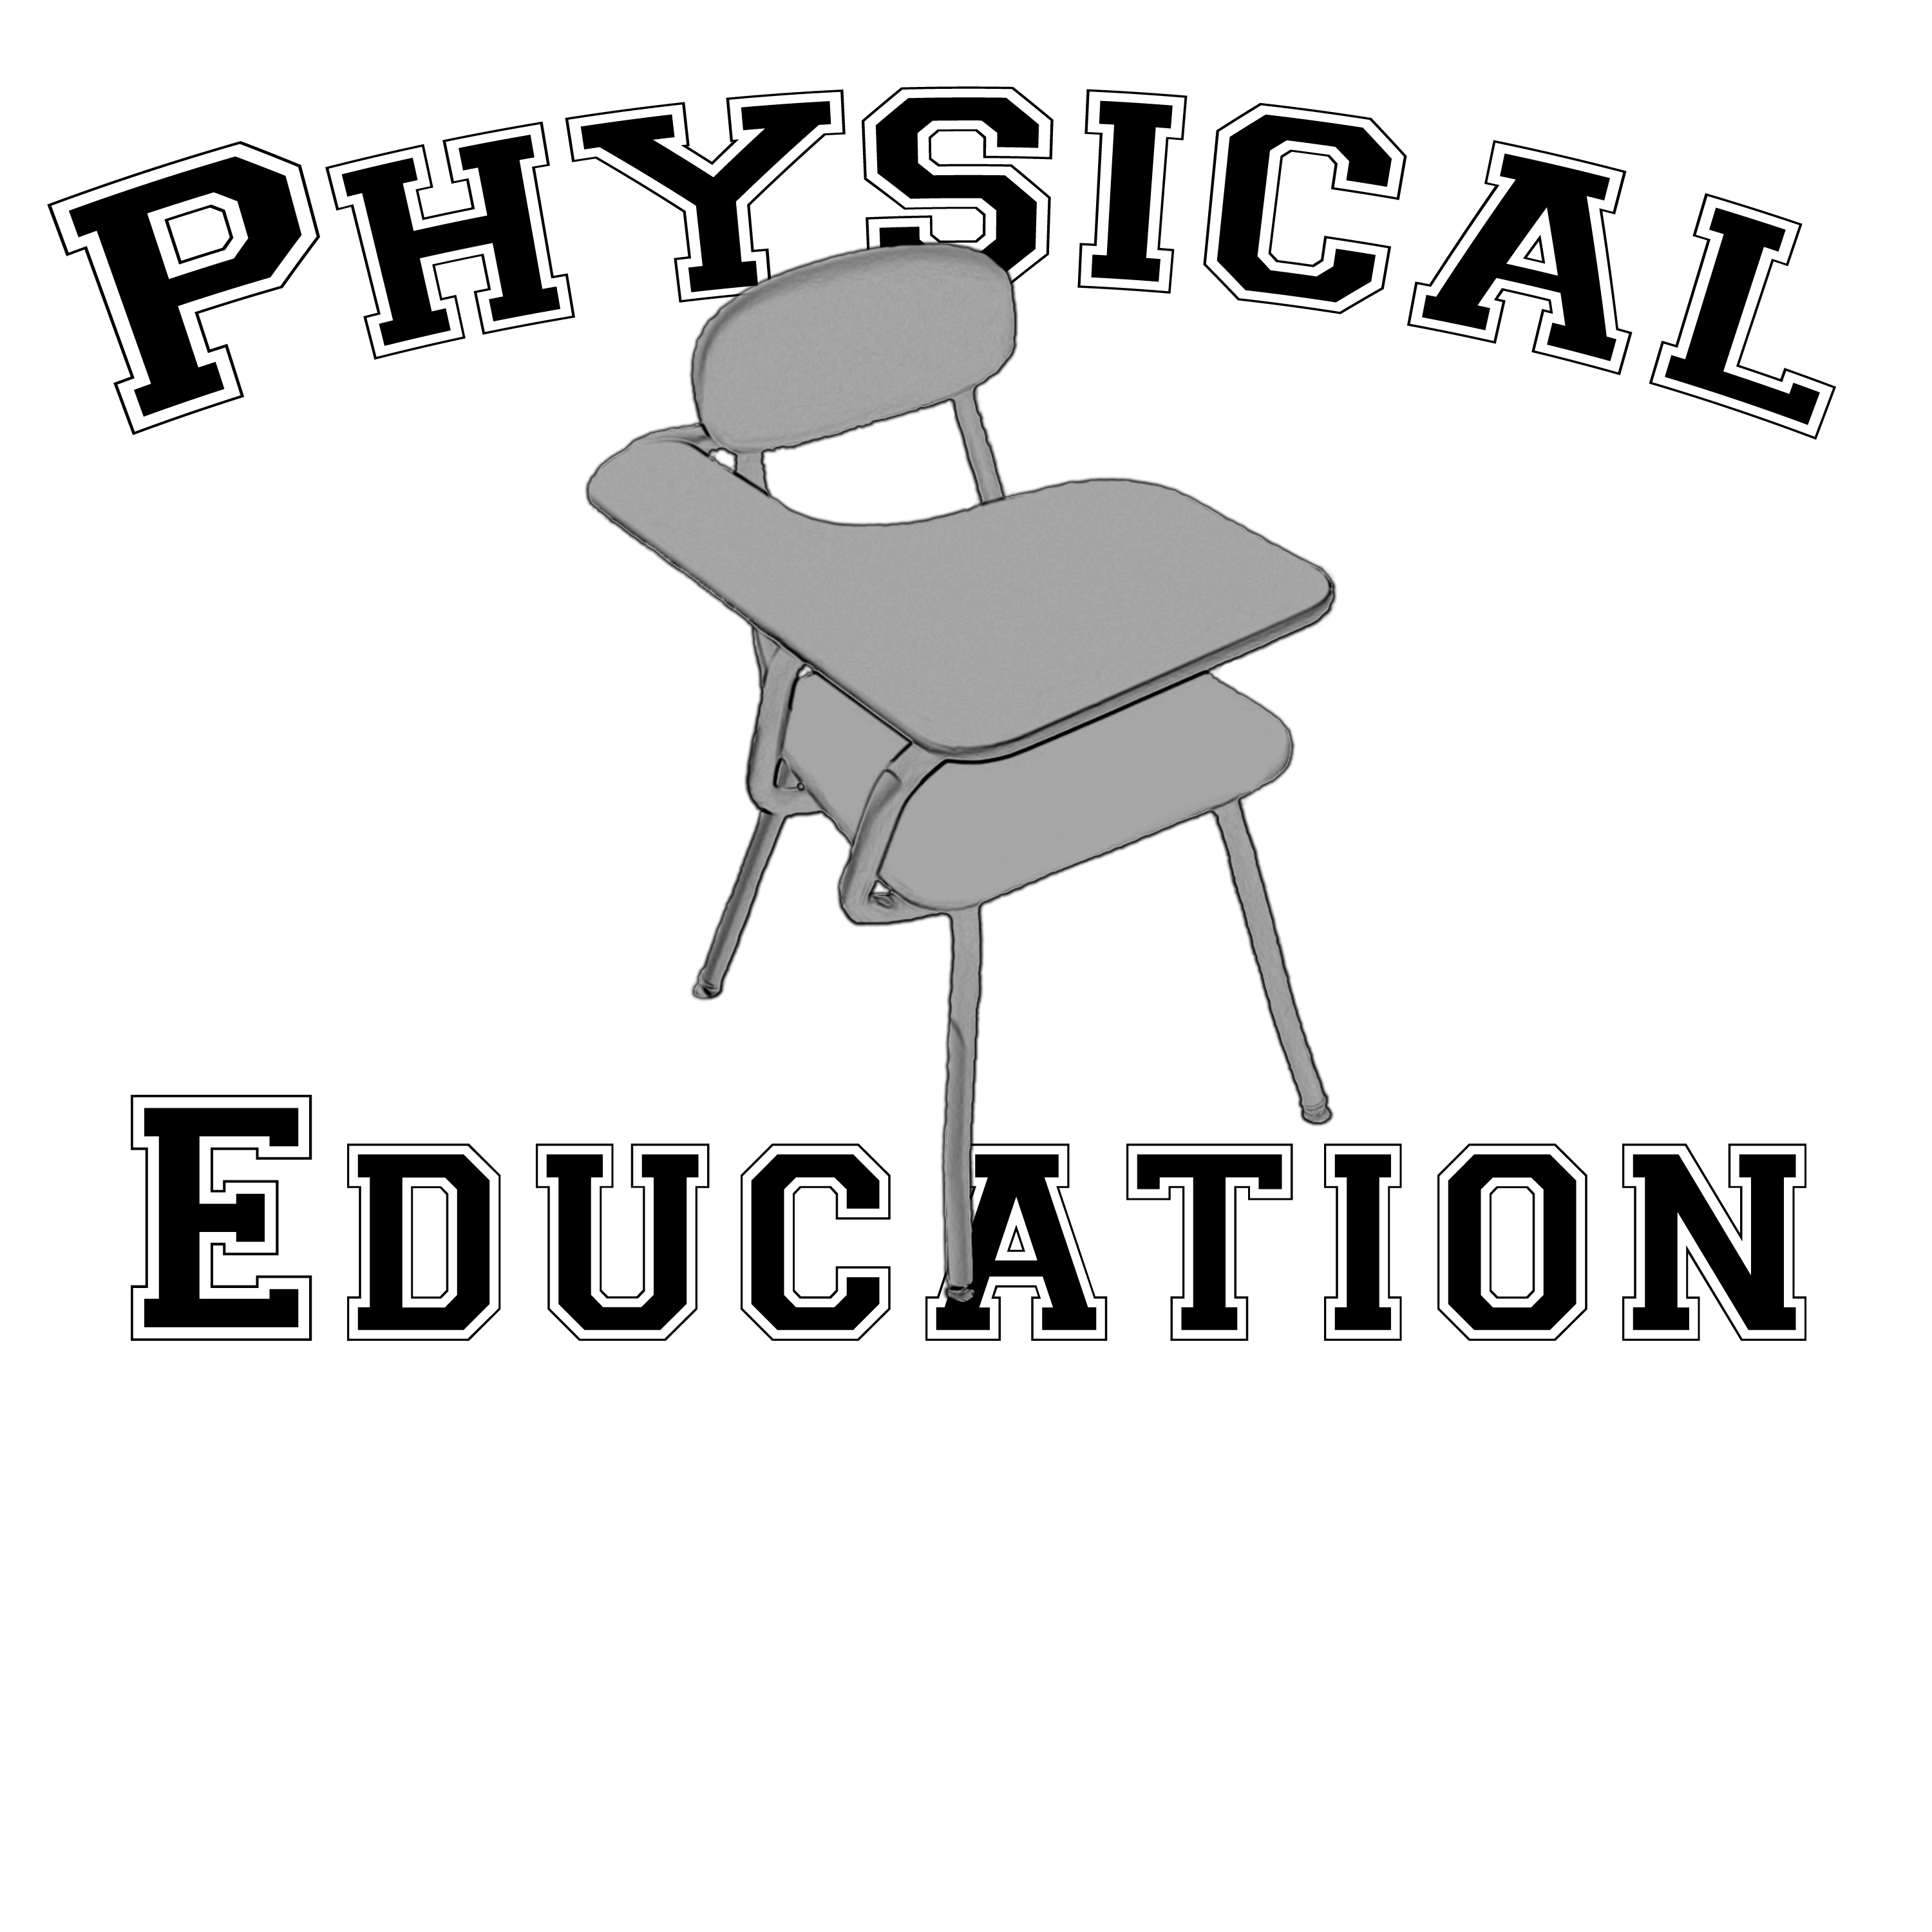 Bachelor of Education (BEd Physical Education)